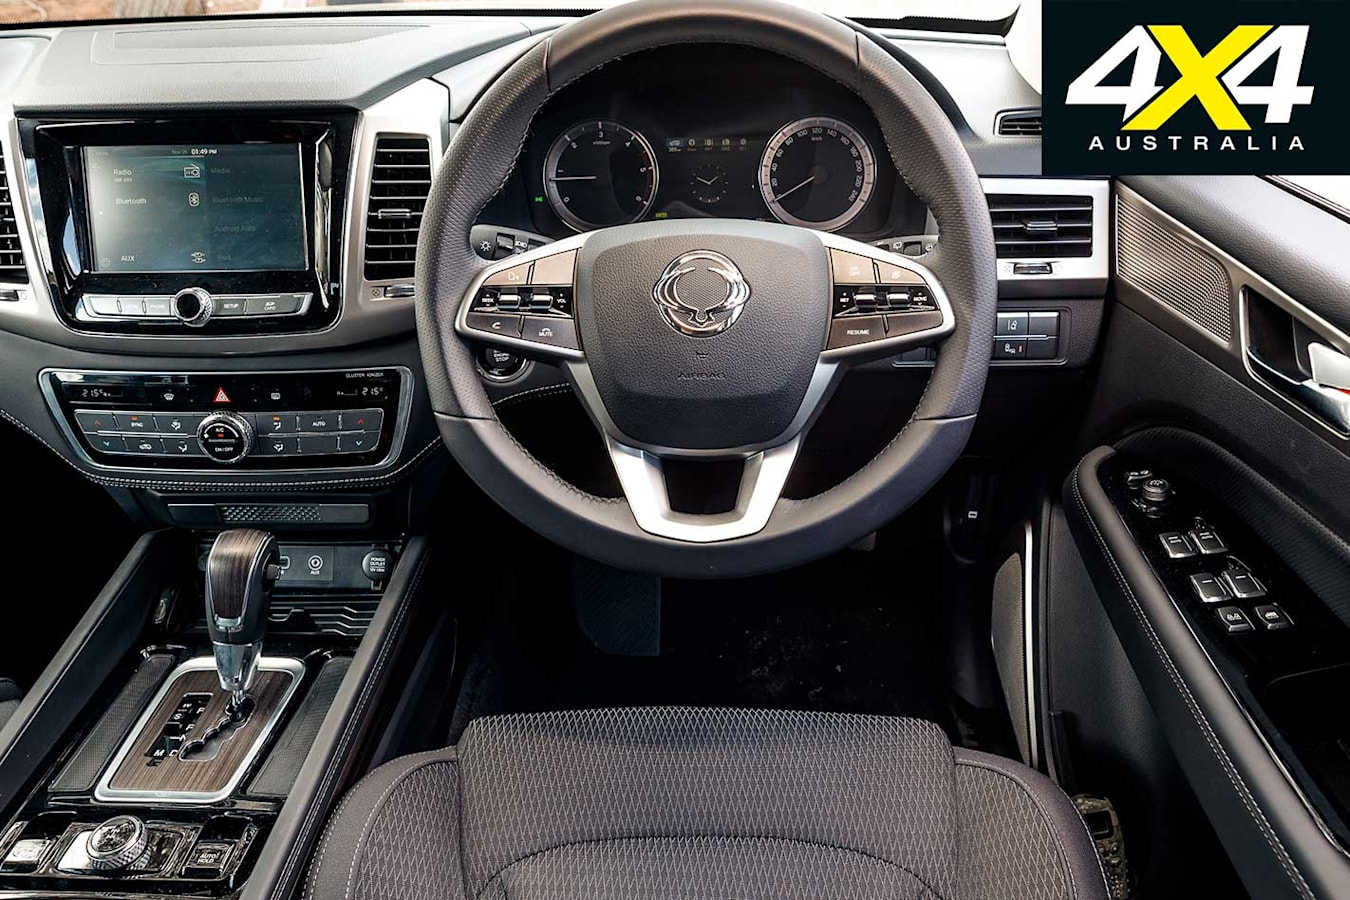 4 X 4 Of The Year 2019 Ssang Yong Rexton ELX Interior Jpg